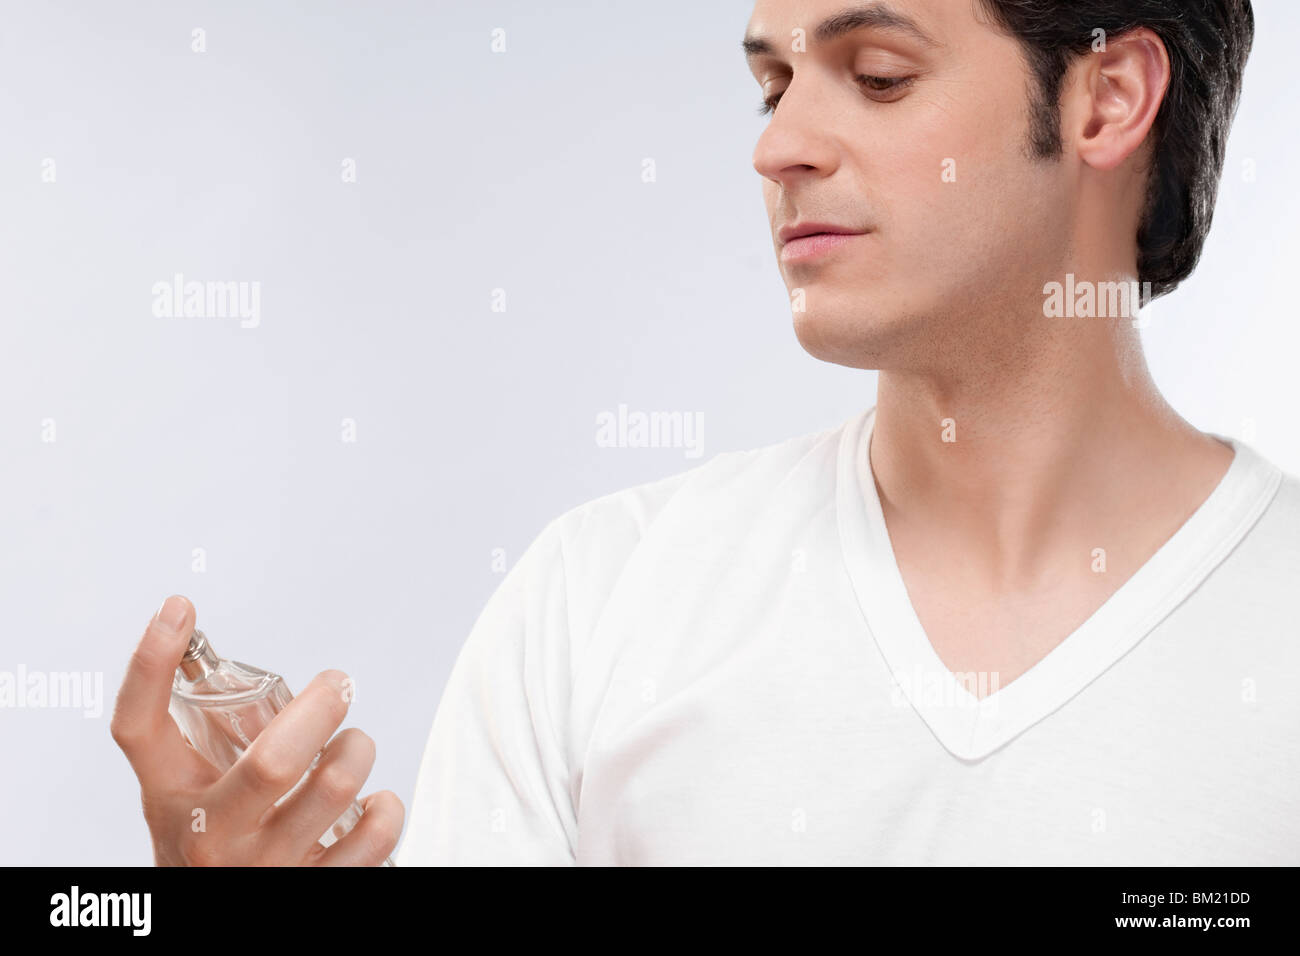 Man looking at a perfume bottle - Stock Image